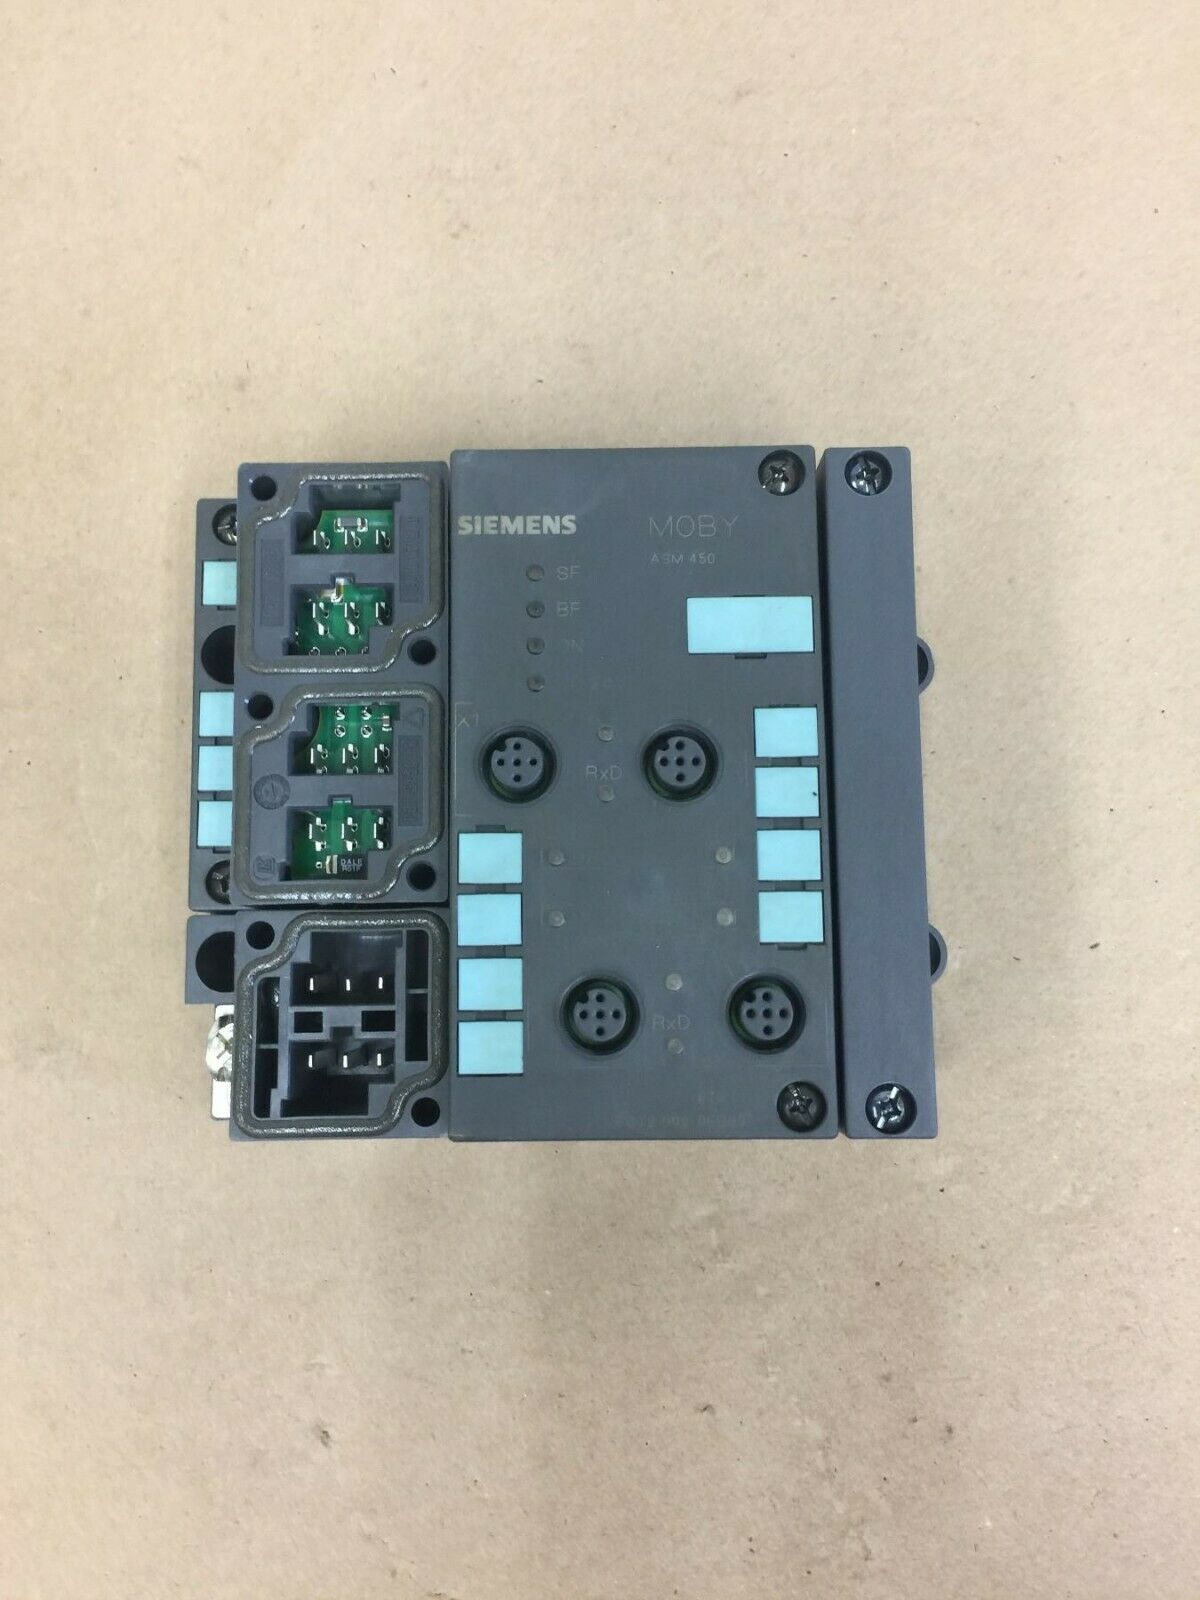 Siemens 6GT2 002-0EB00 Moby ASM 450 Interface Module